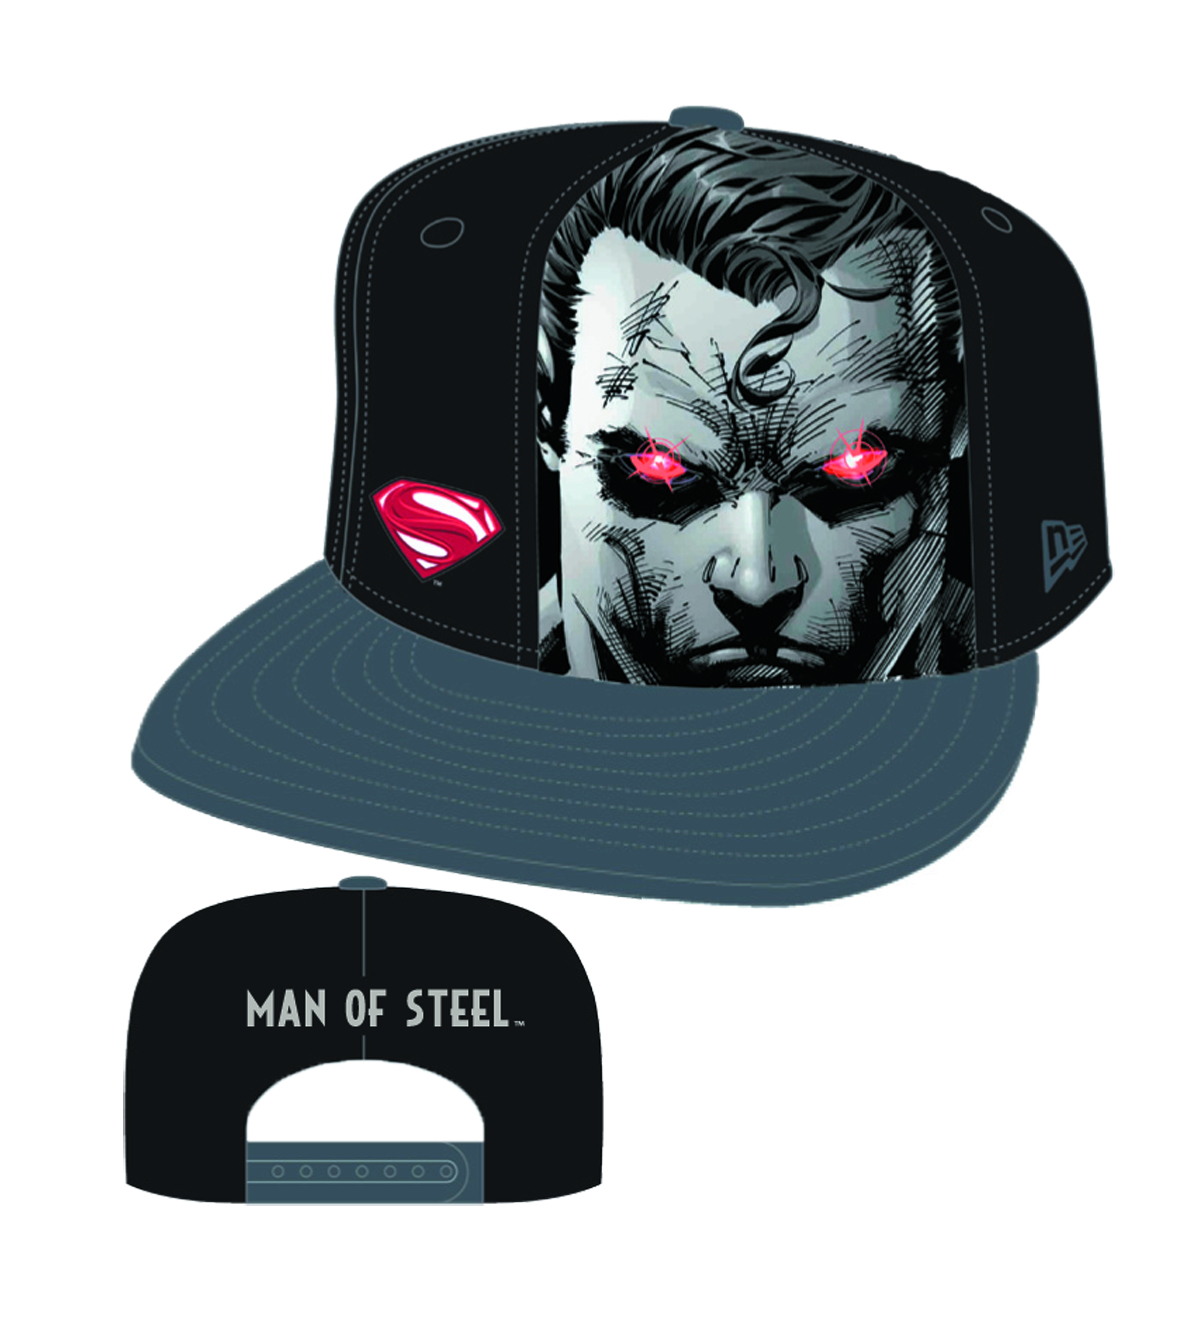 SUPERMAN MAN OF STEEL SUB PAN SNAPBACK CAP